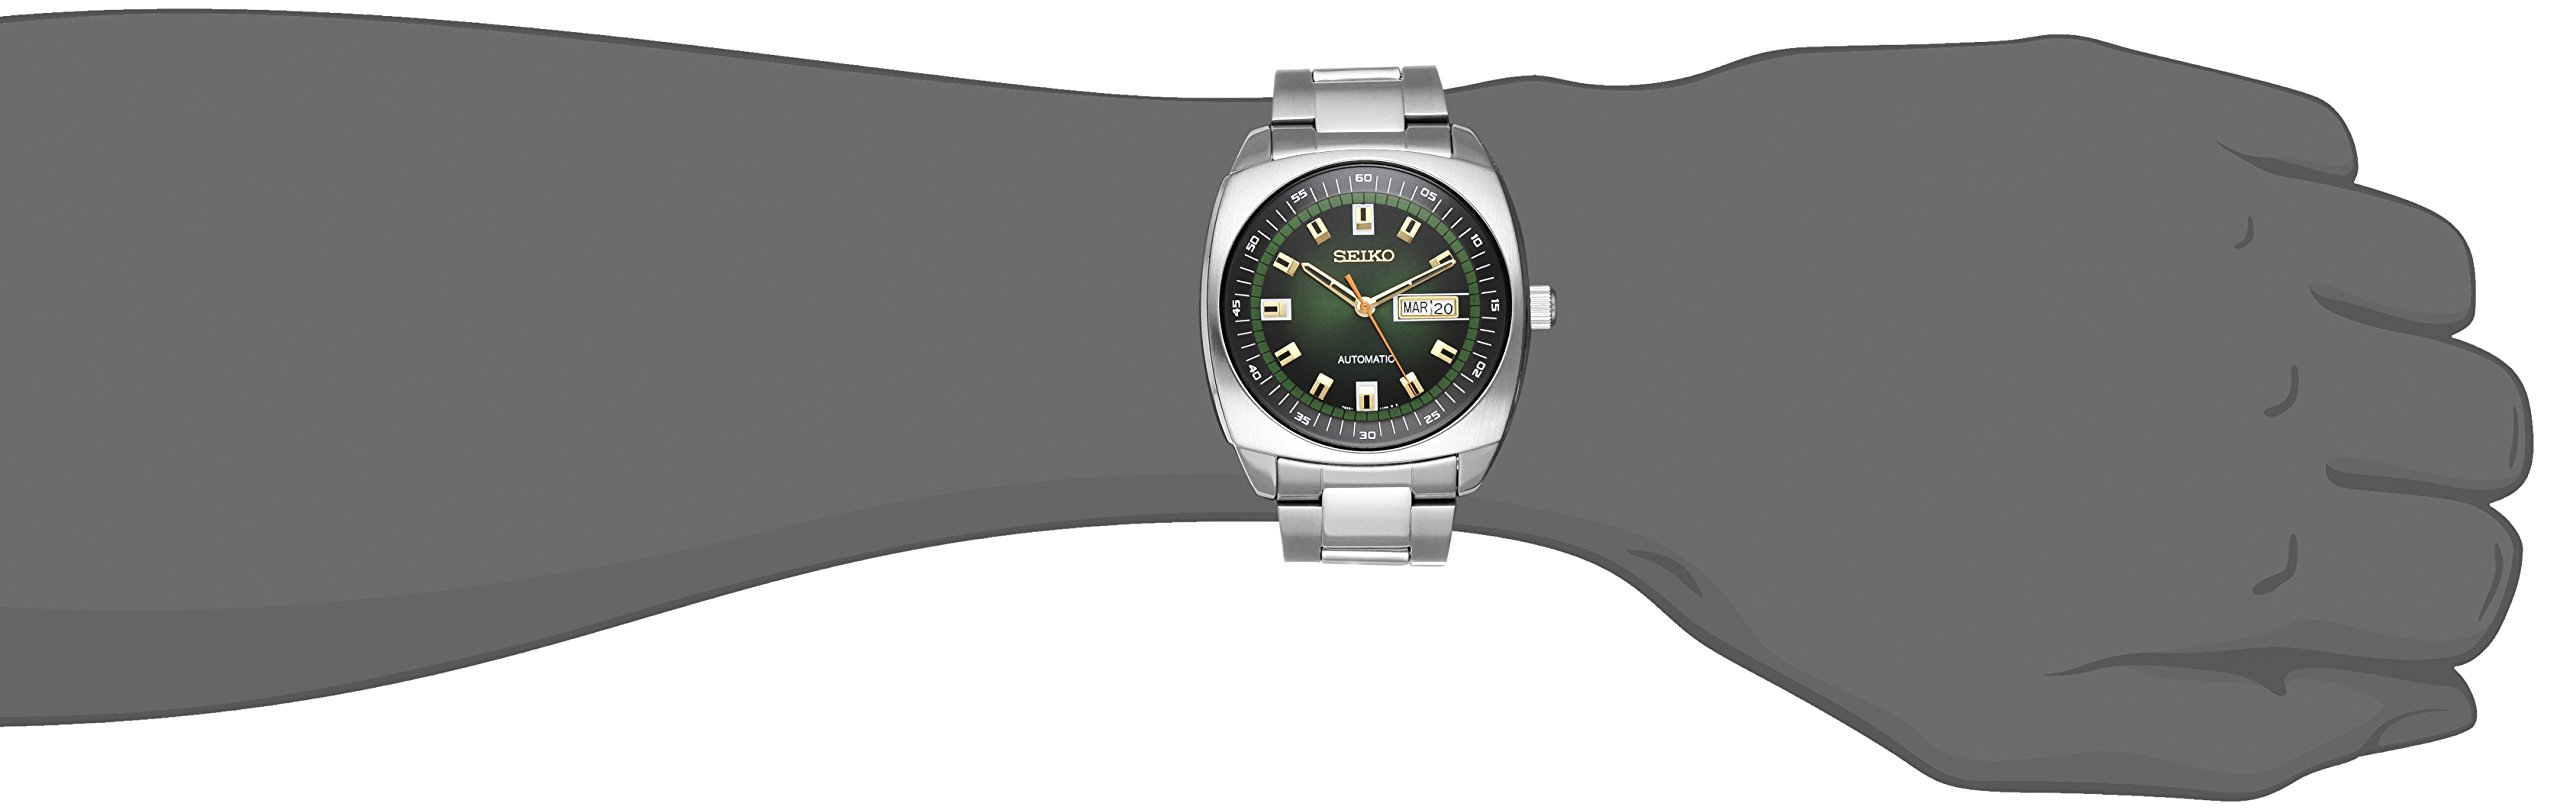 Seiko Men's SNKM97 Analog Green Dial Automatic Silver Stainless Steel Watch by SEIKO (Image #3)